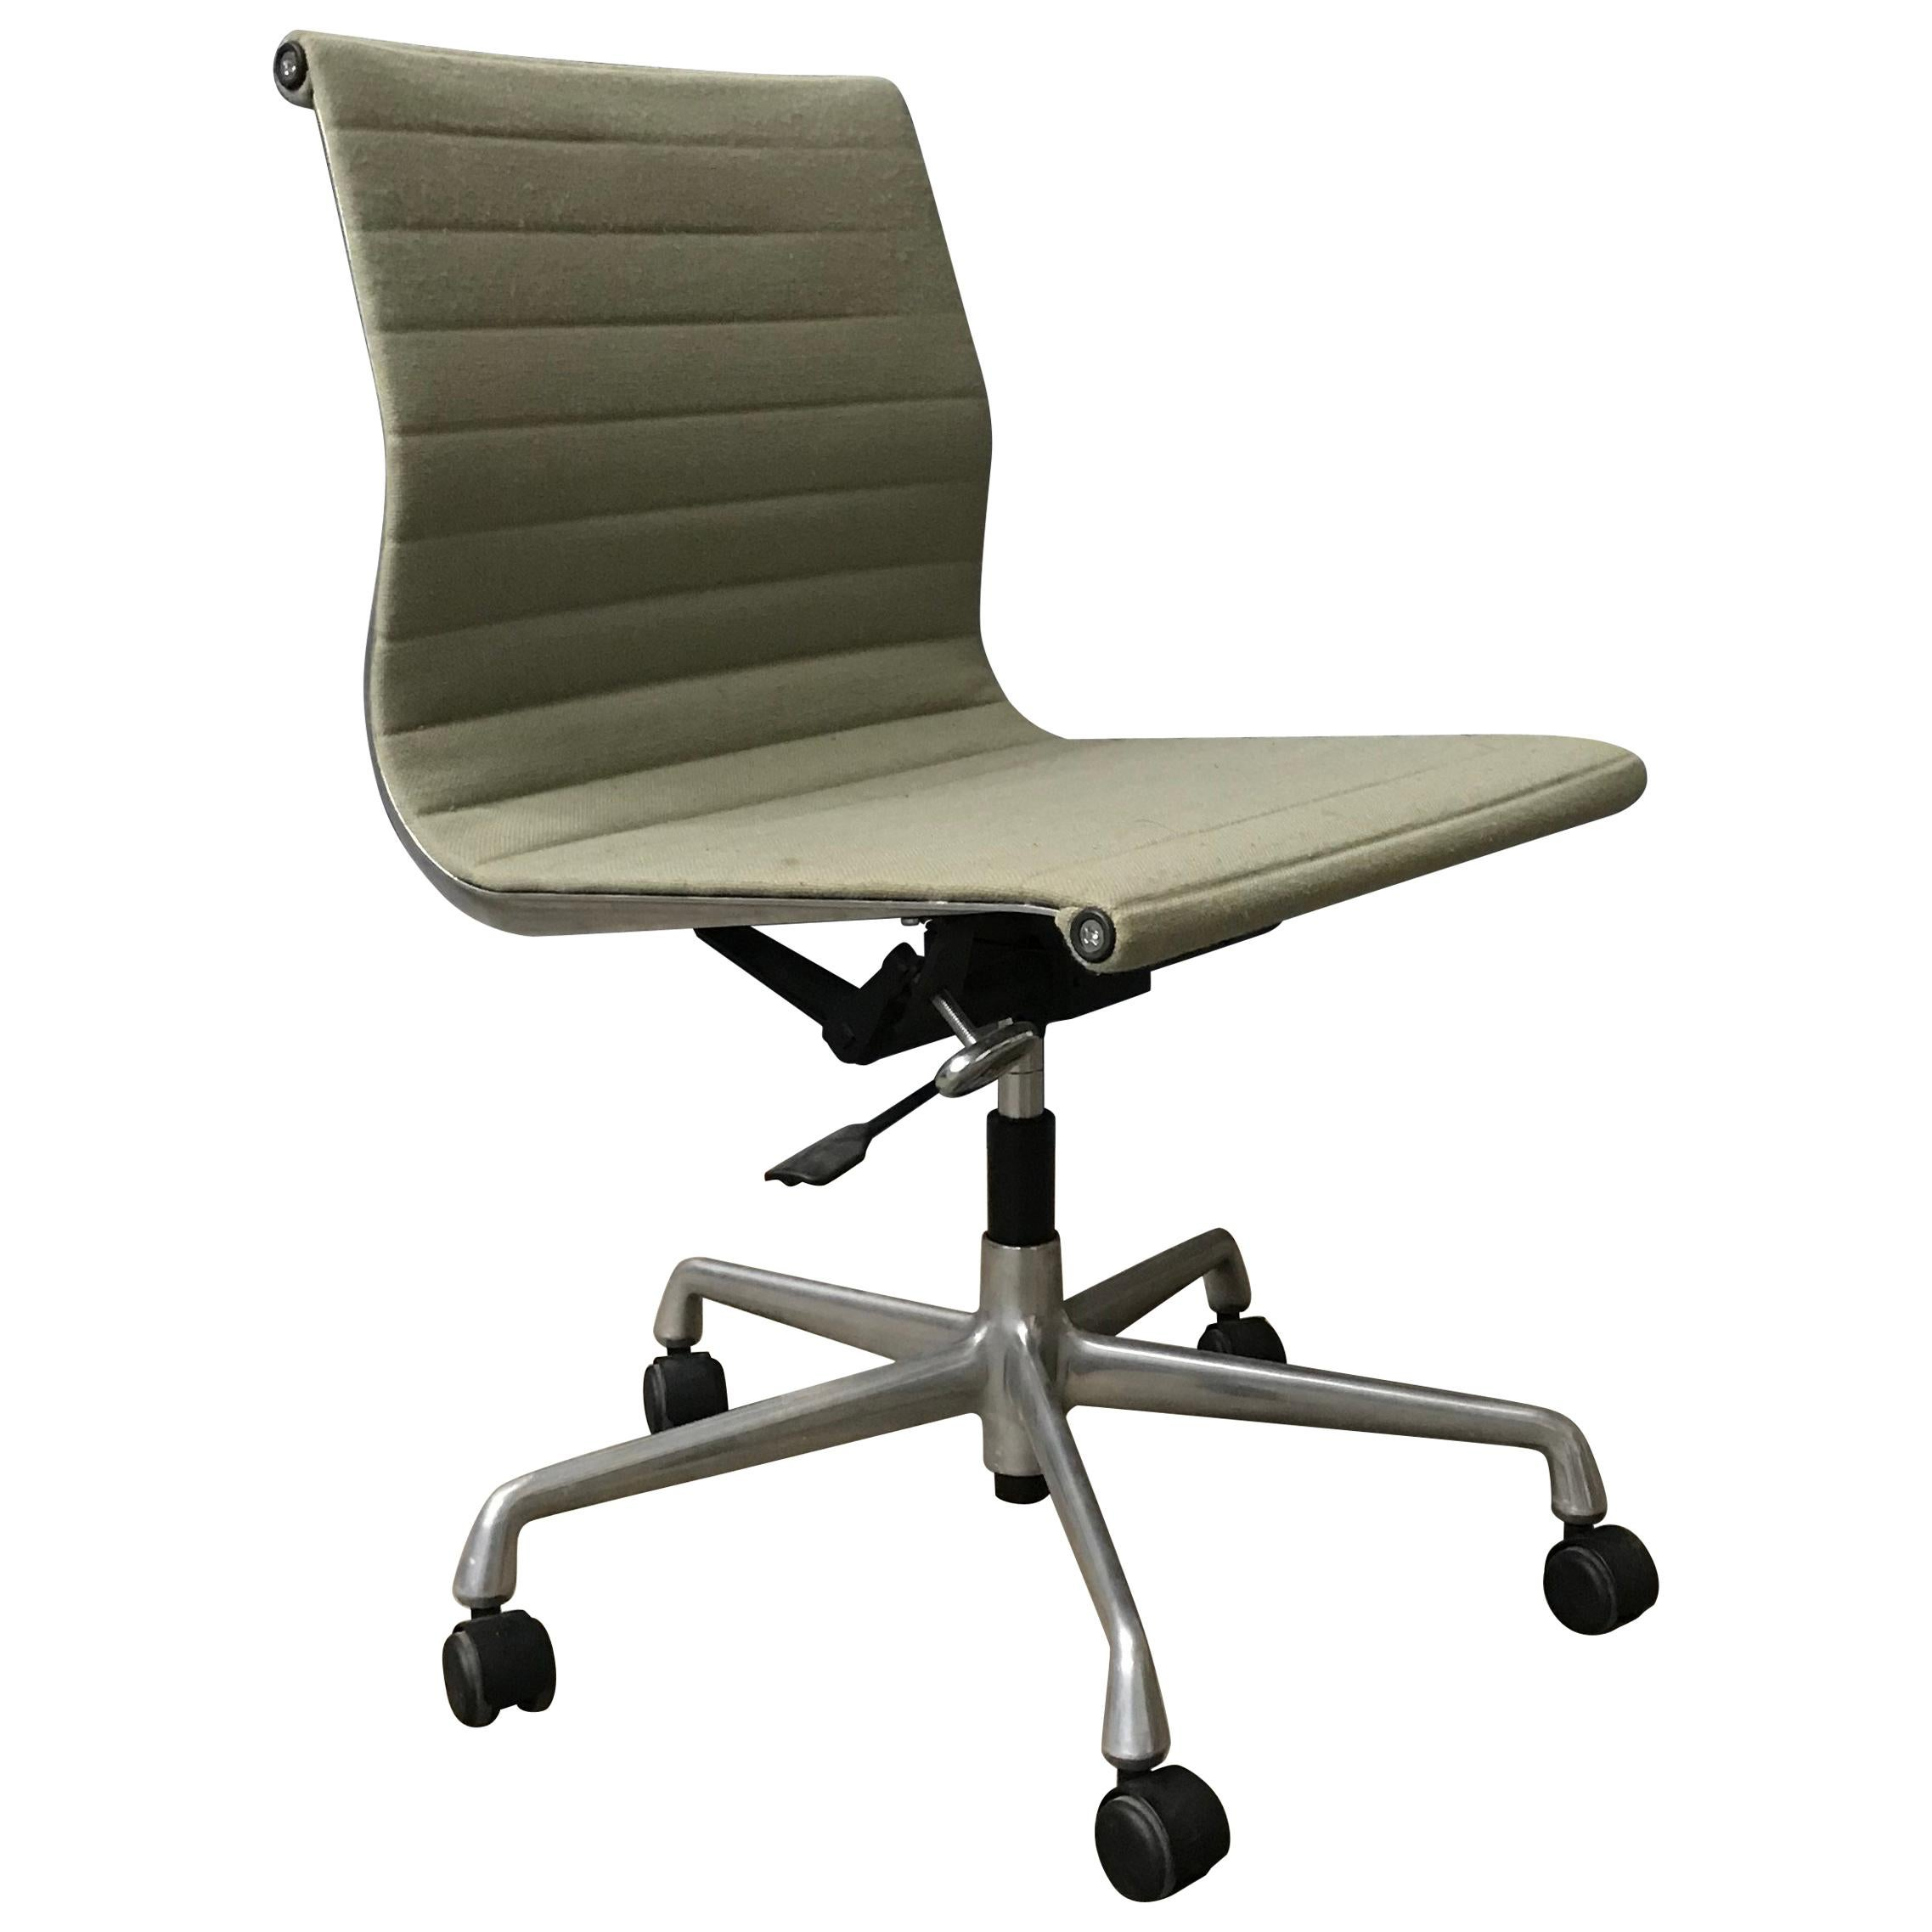 How To Adjust Office Chair 1958 Ray And Charles Eames Fabric Adjust Tilt Office Chair 4 Wheels No Arms